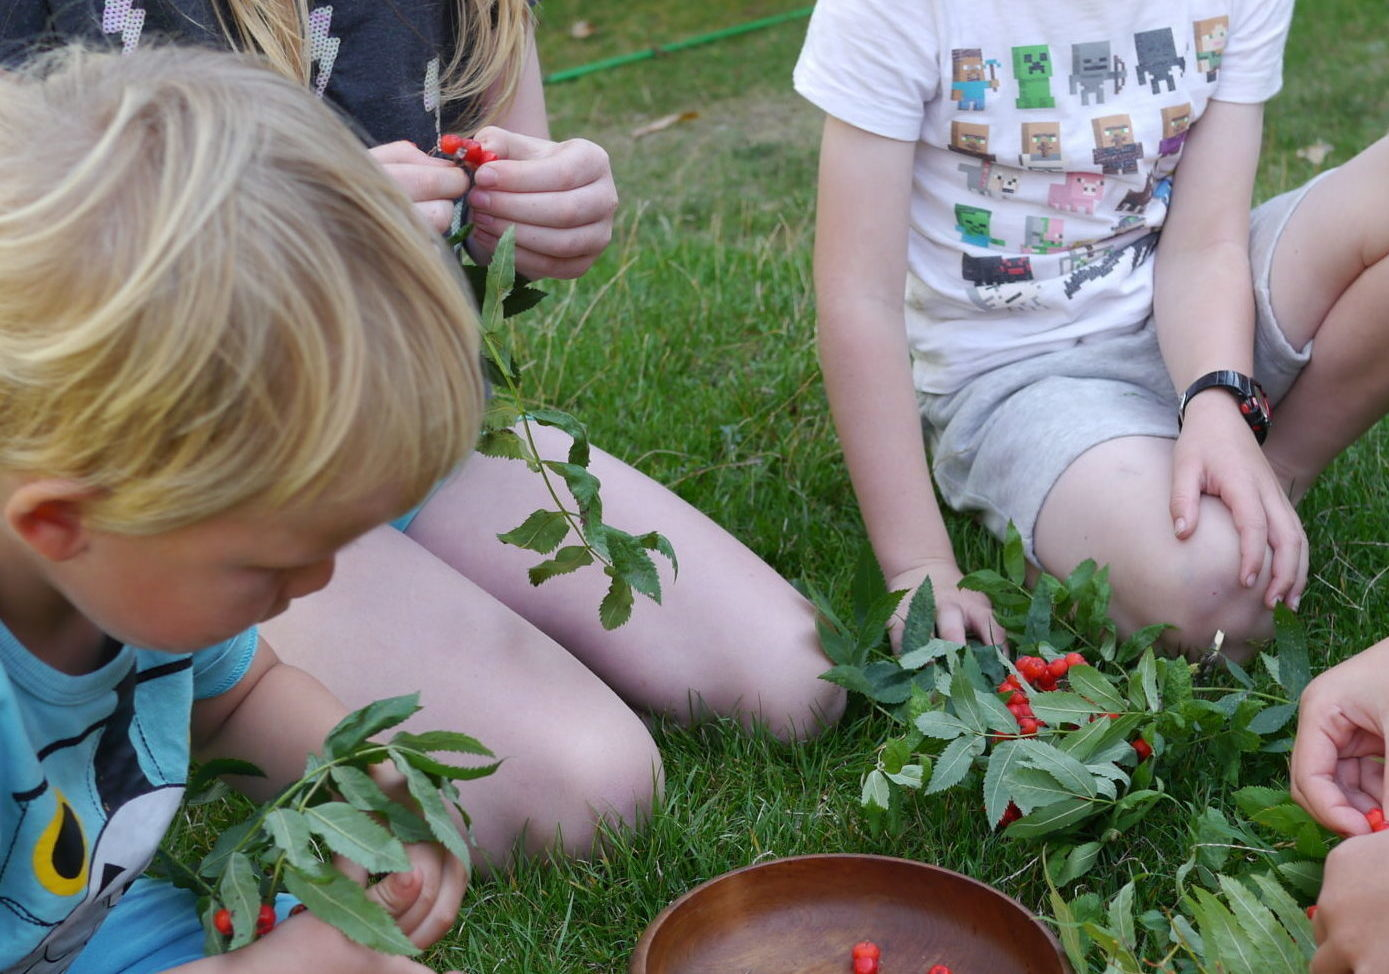 4 children of different ages sitting on grass picking red berries off leafy twigs and putting them in a wooden bowl